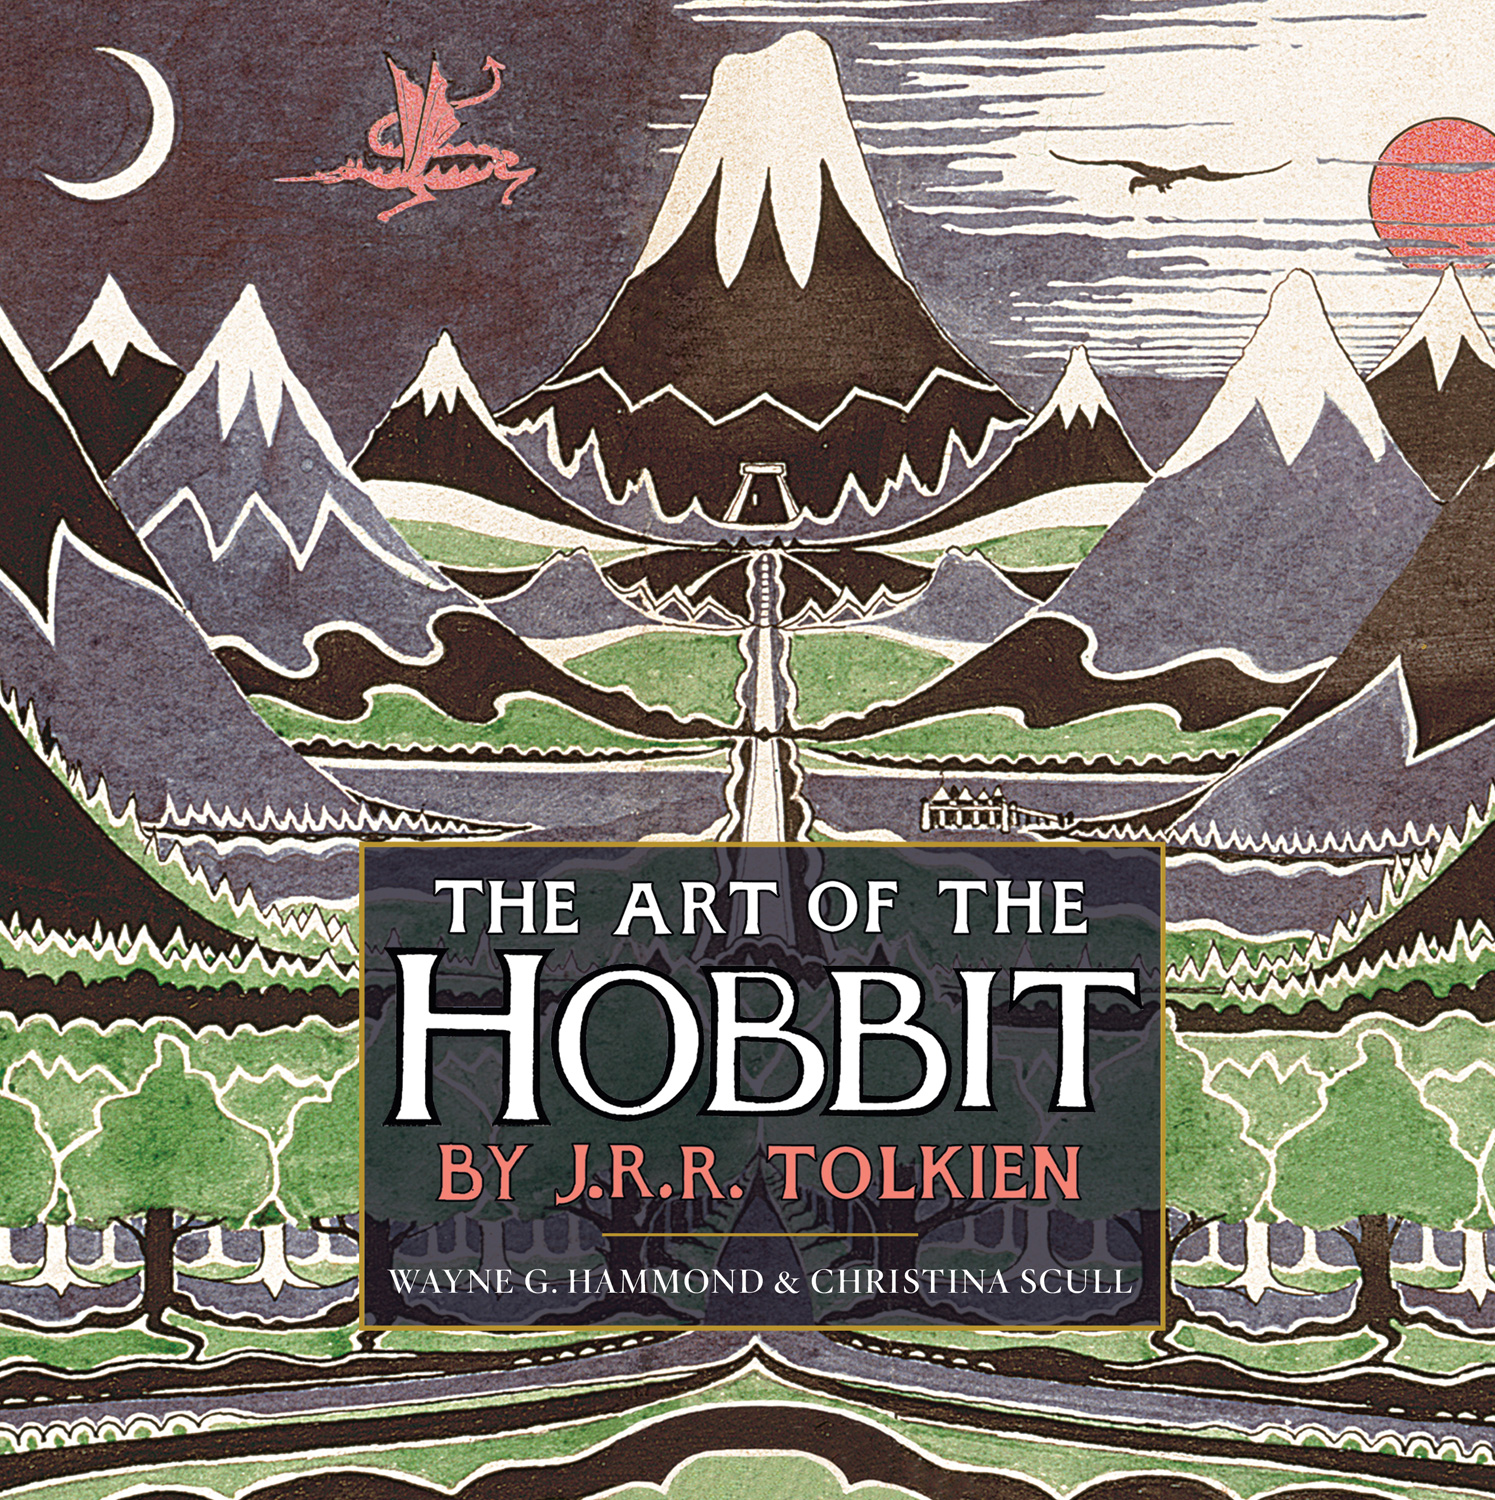 The Art of The Hobbit by J.R.R. Tolkien-9780547928258